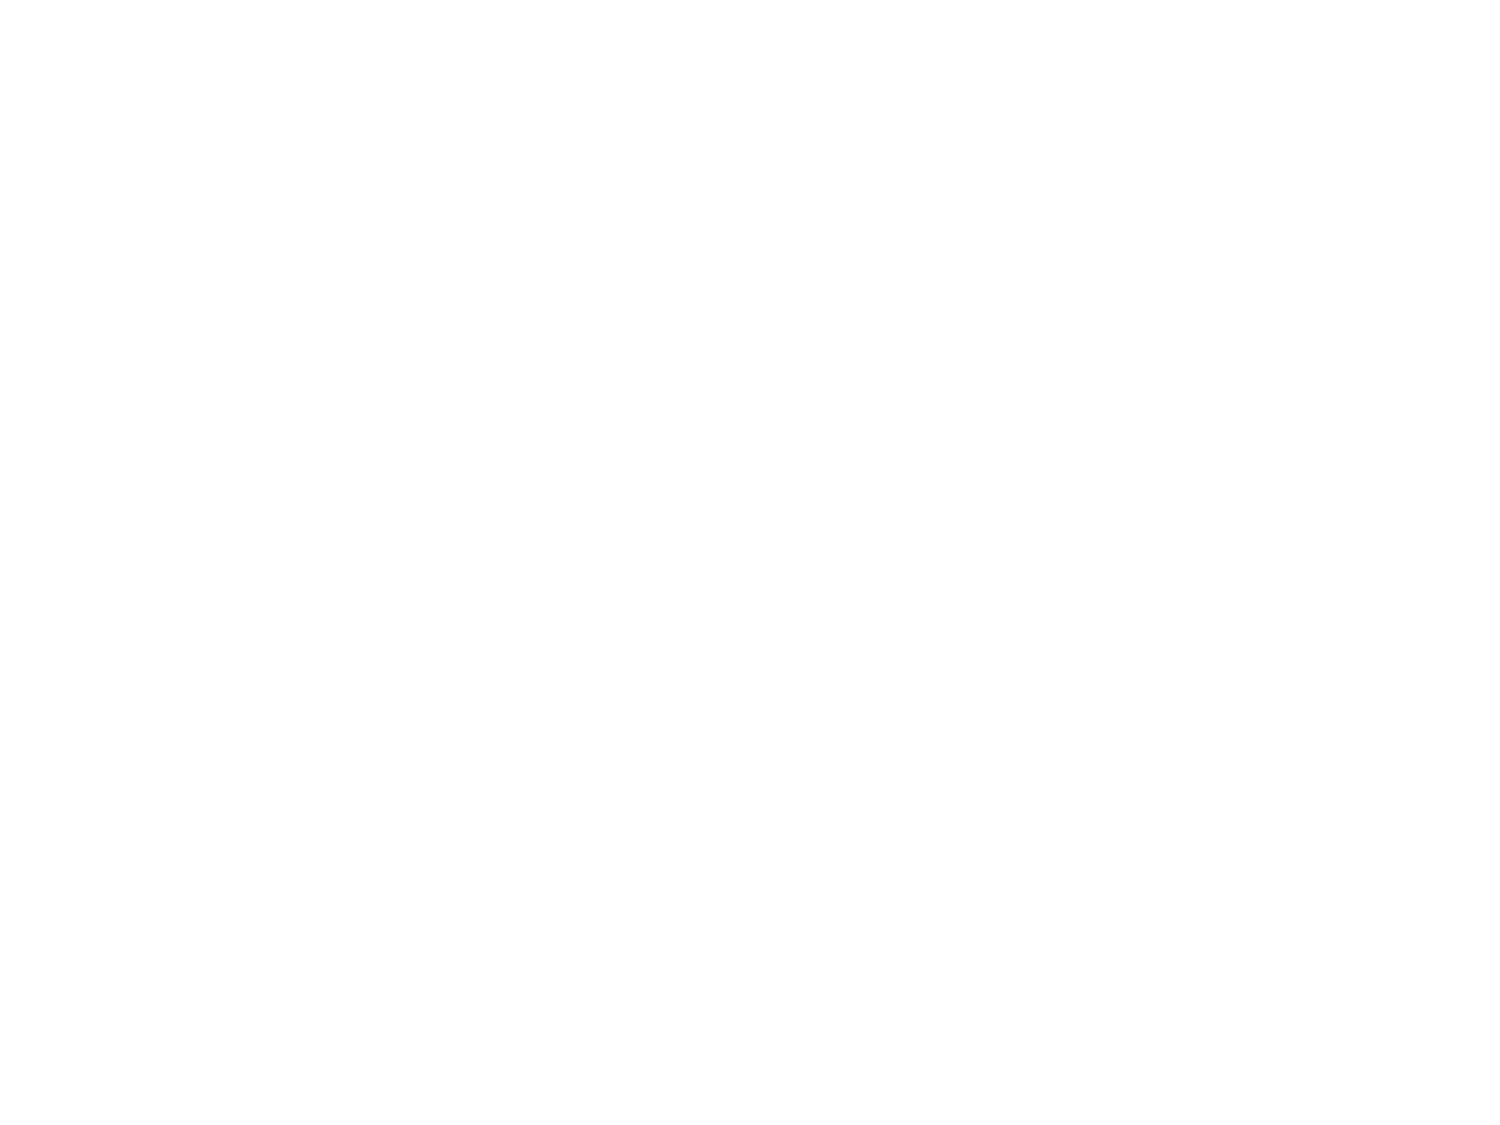 Nadia Sheikh Official Website